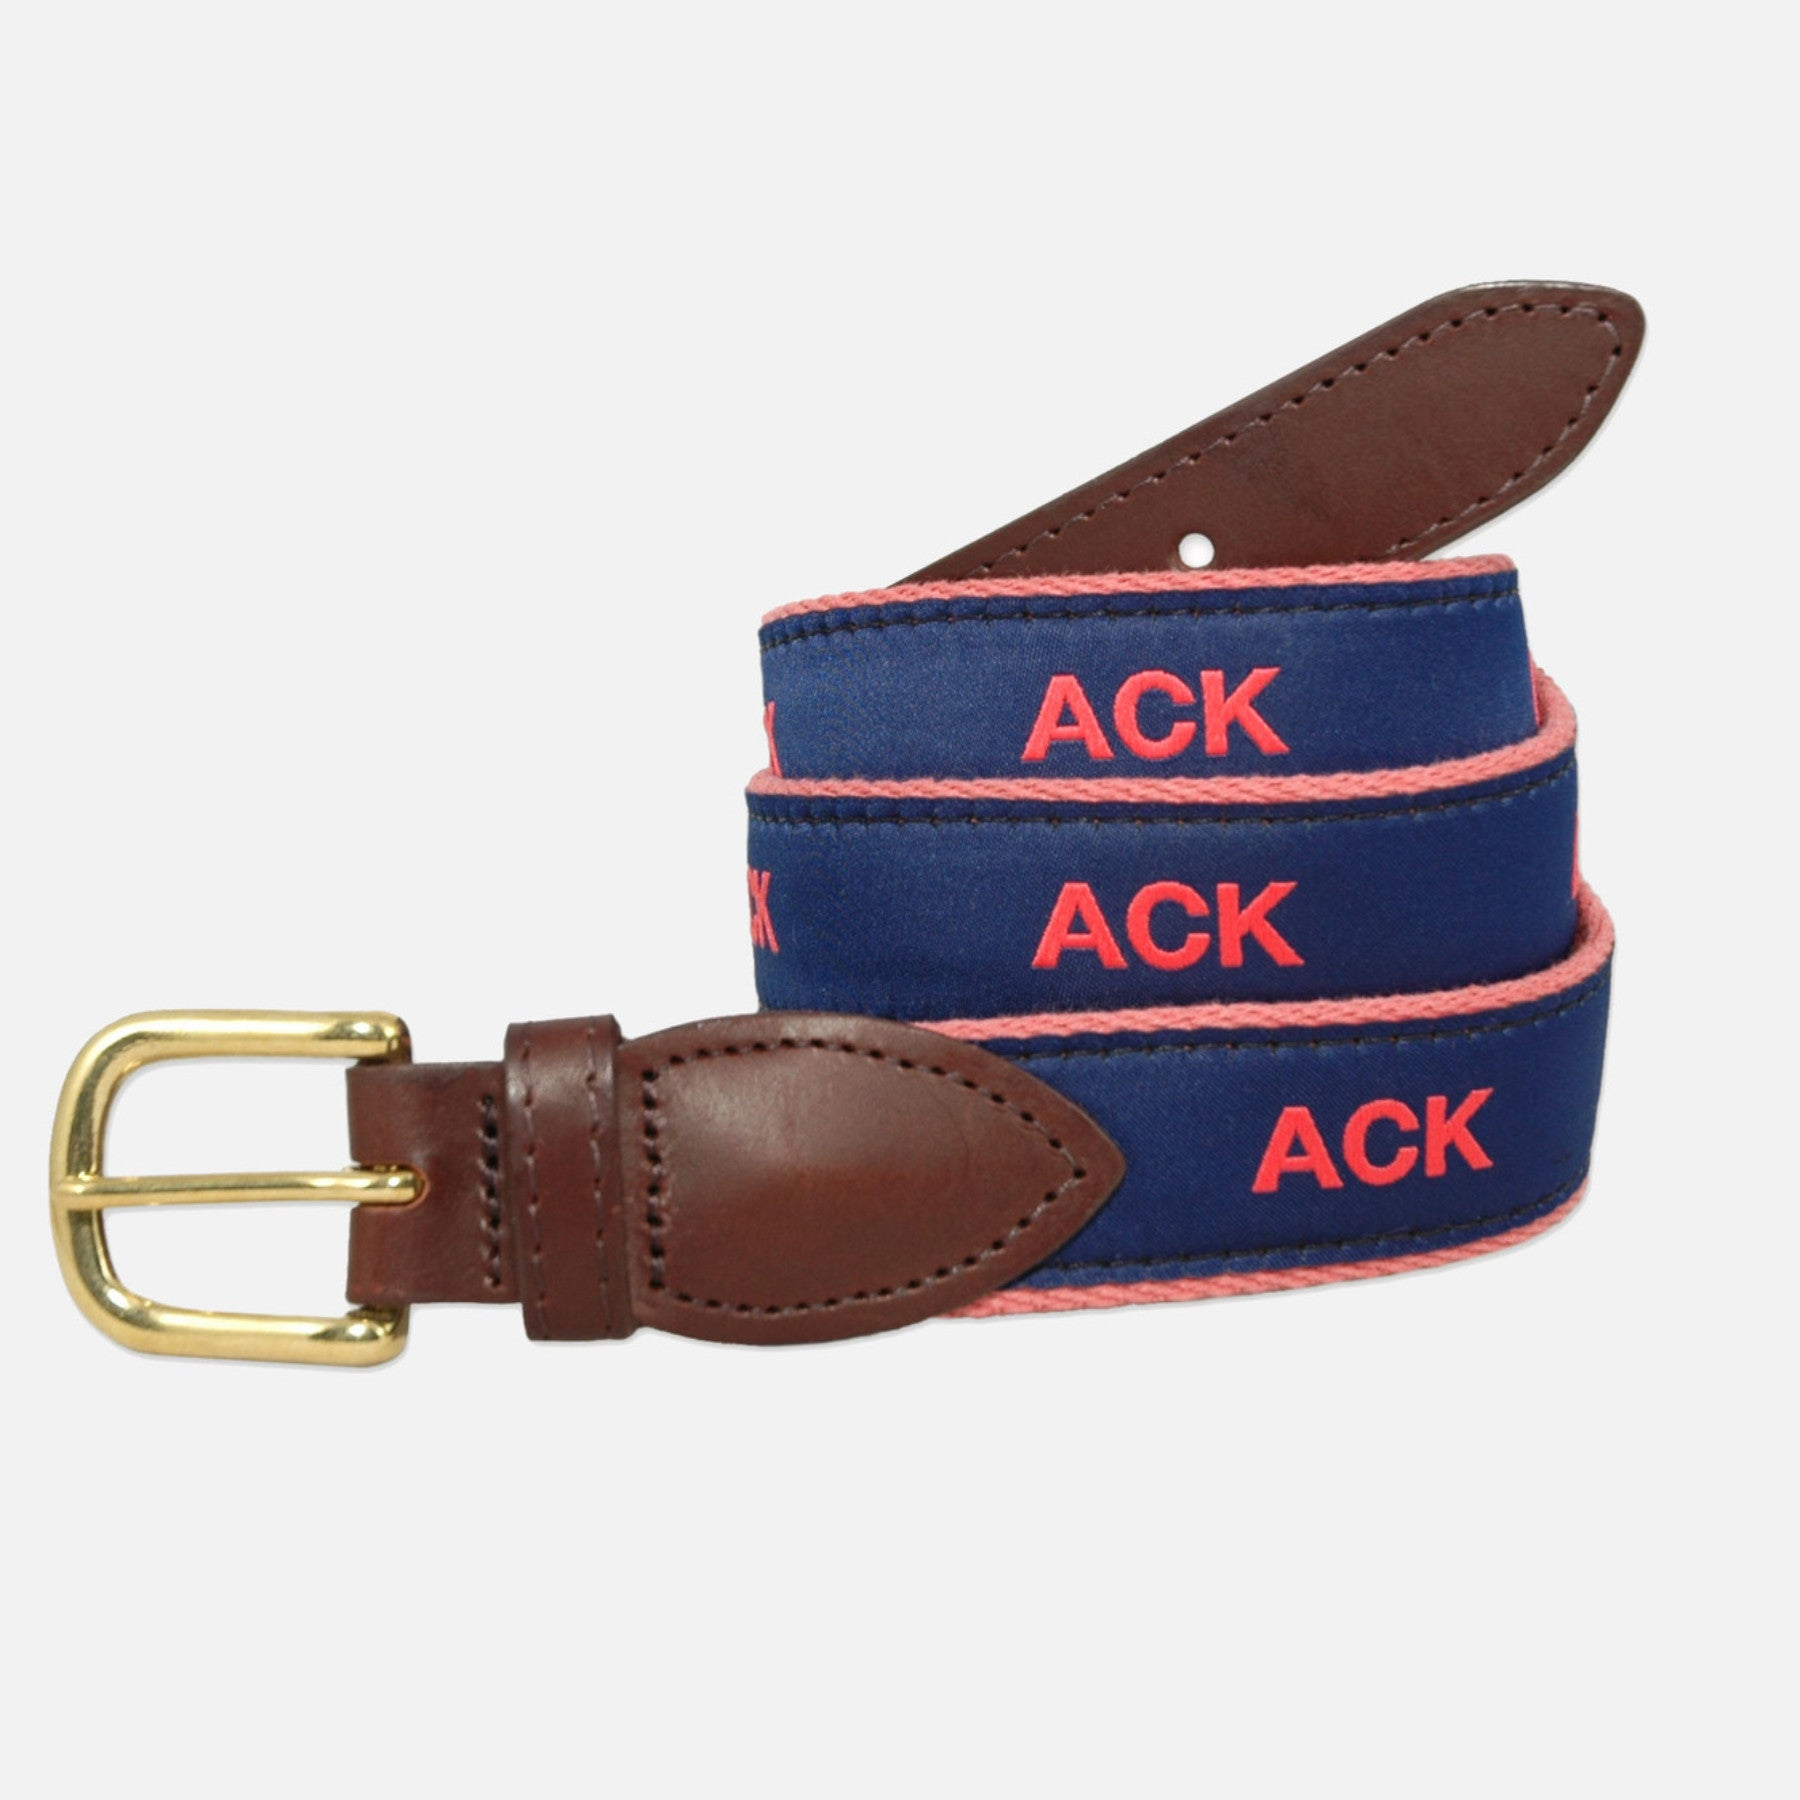 YRI Men's Ribbon Belt - Red ACK on Red Webbing